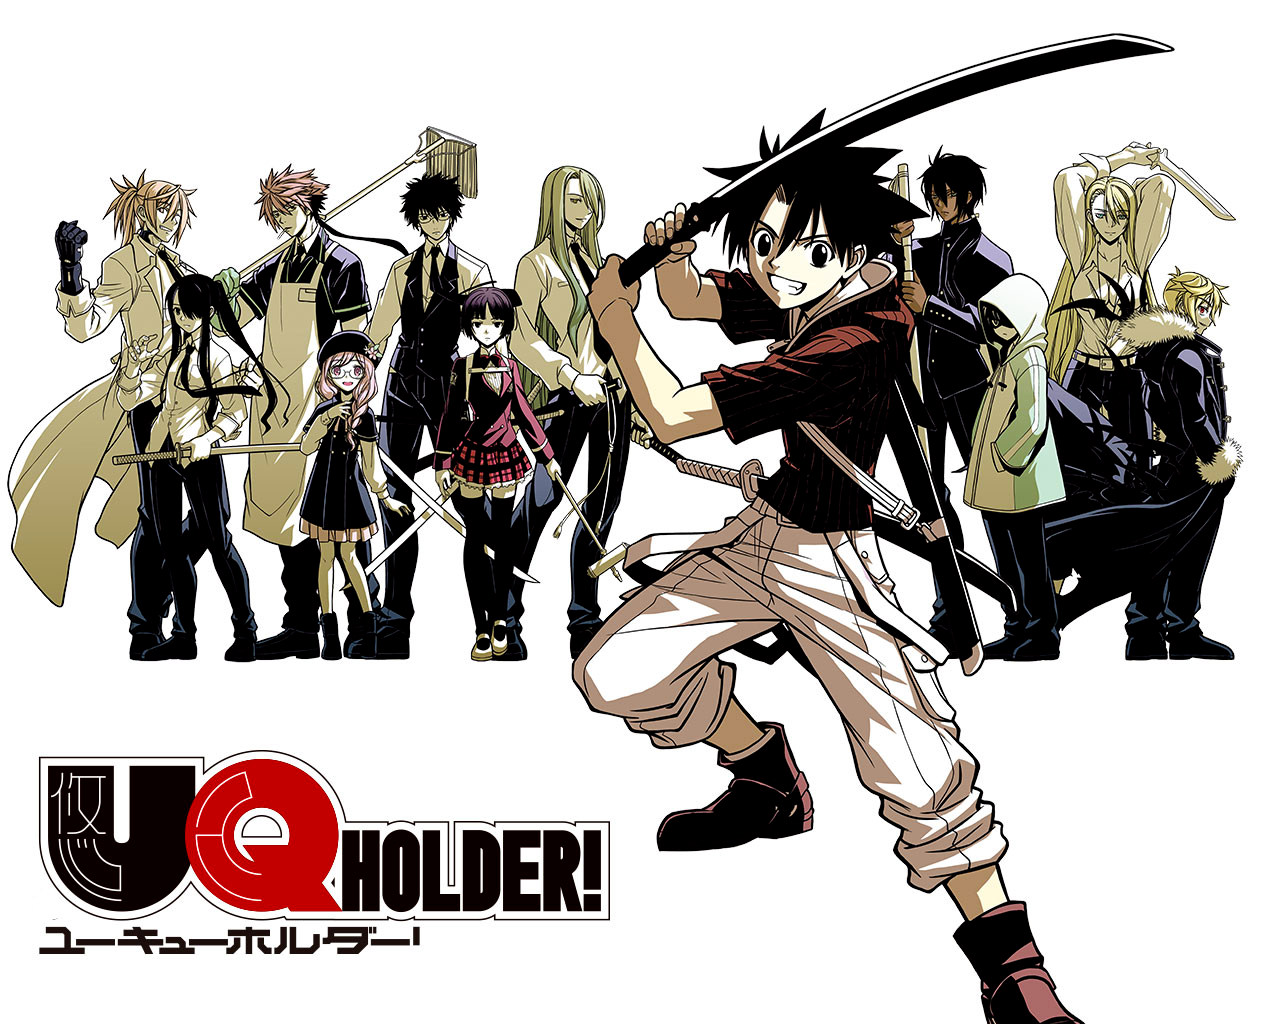 UQ_Holder!_Manga.png